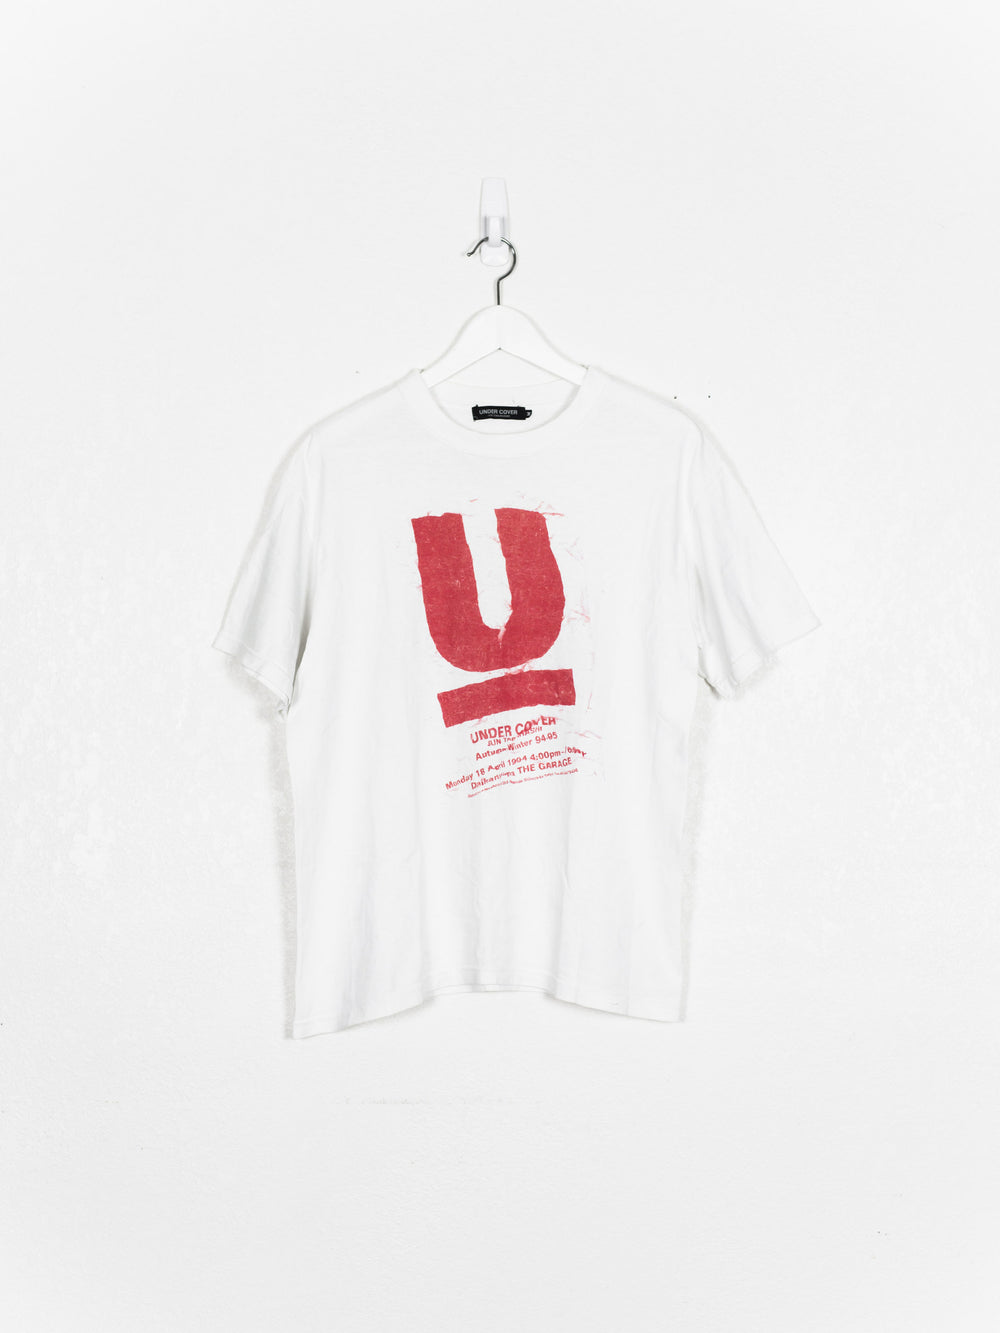 Undercover First Show Tee